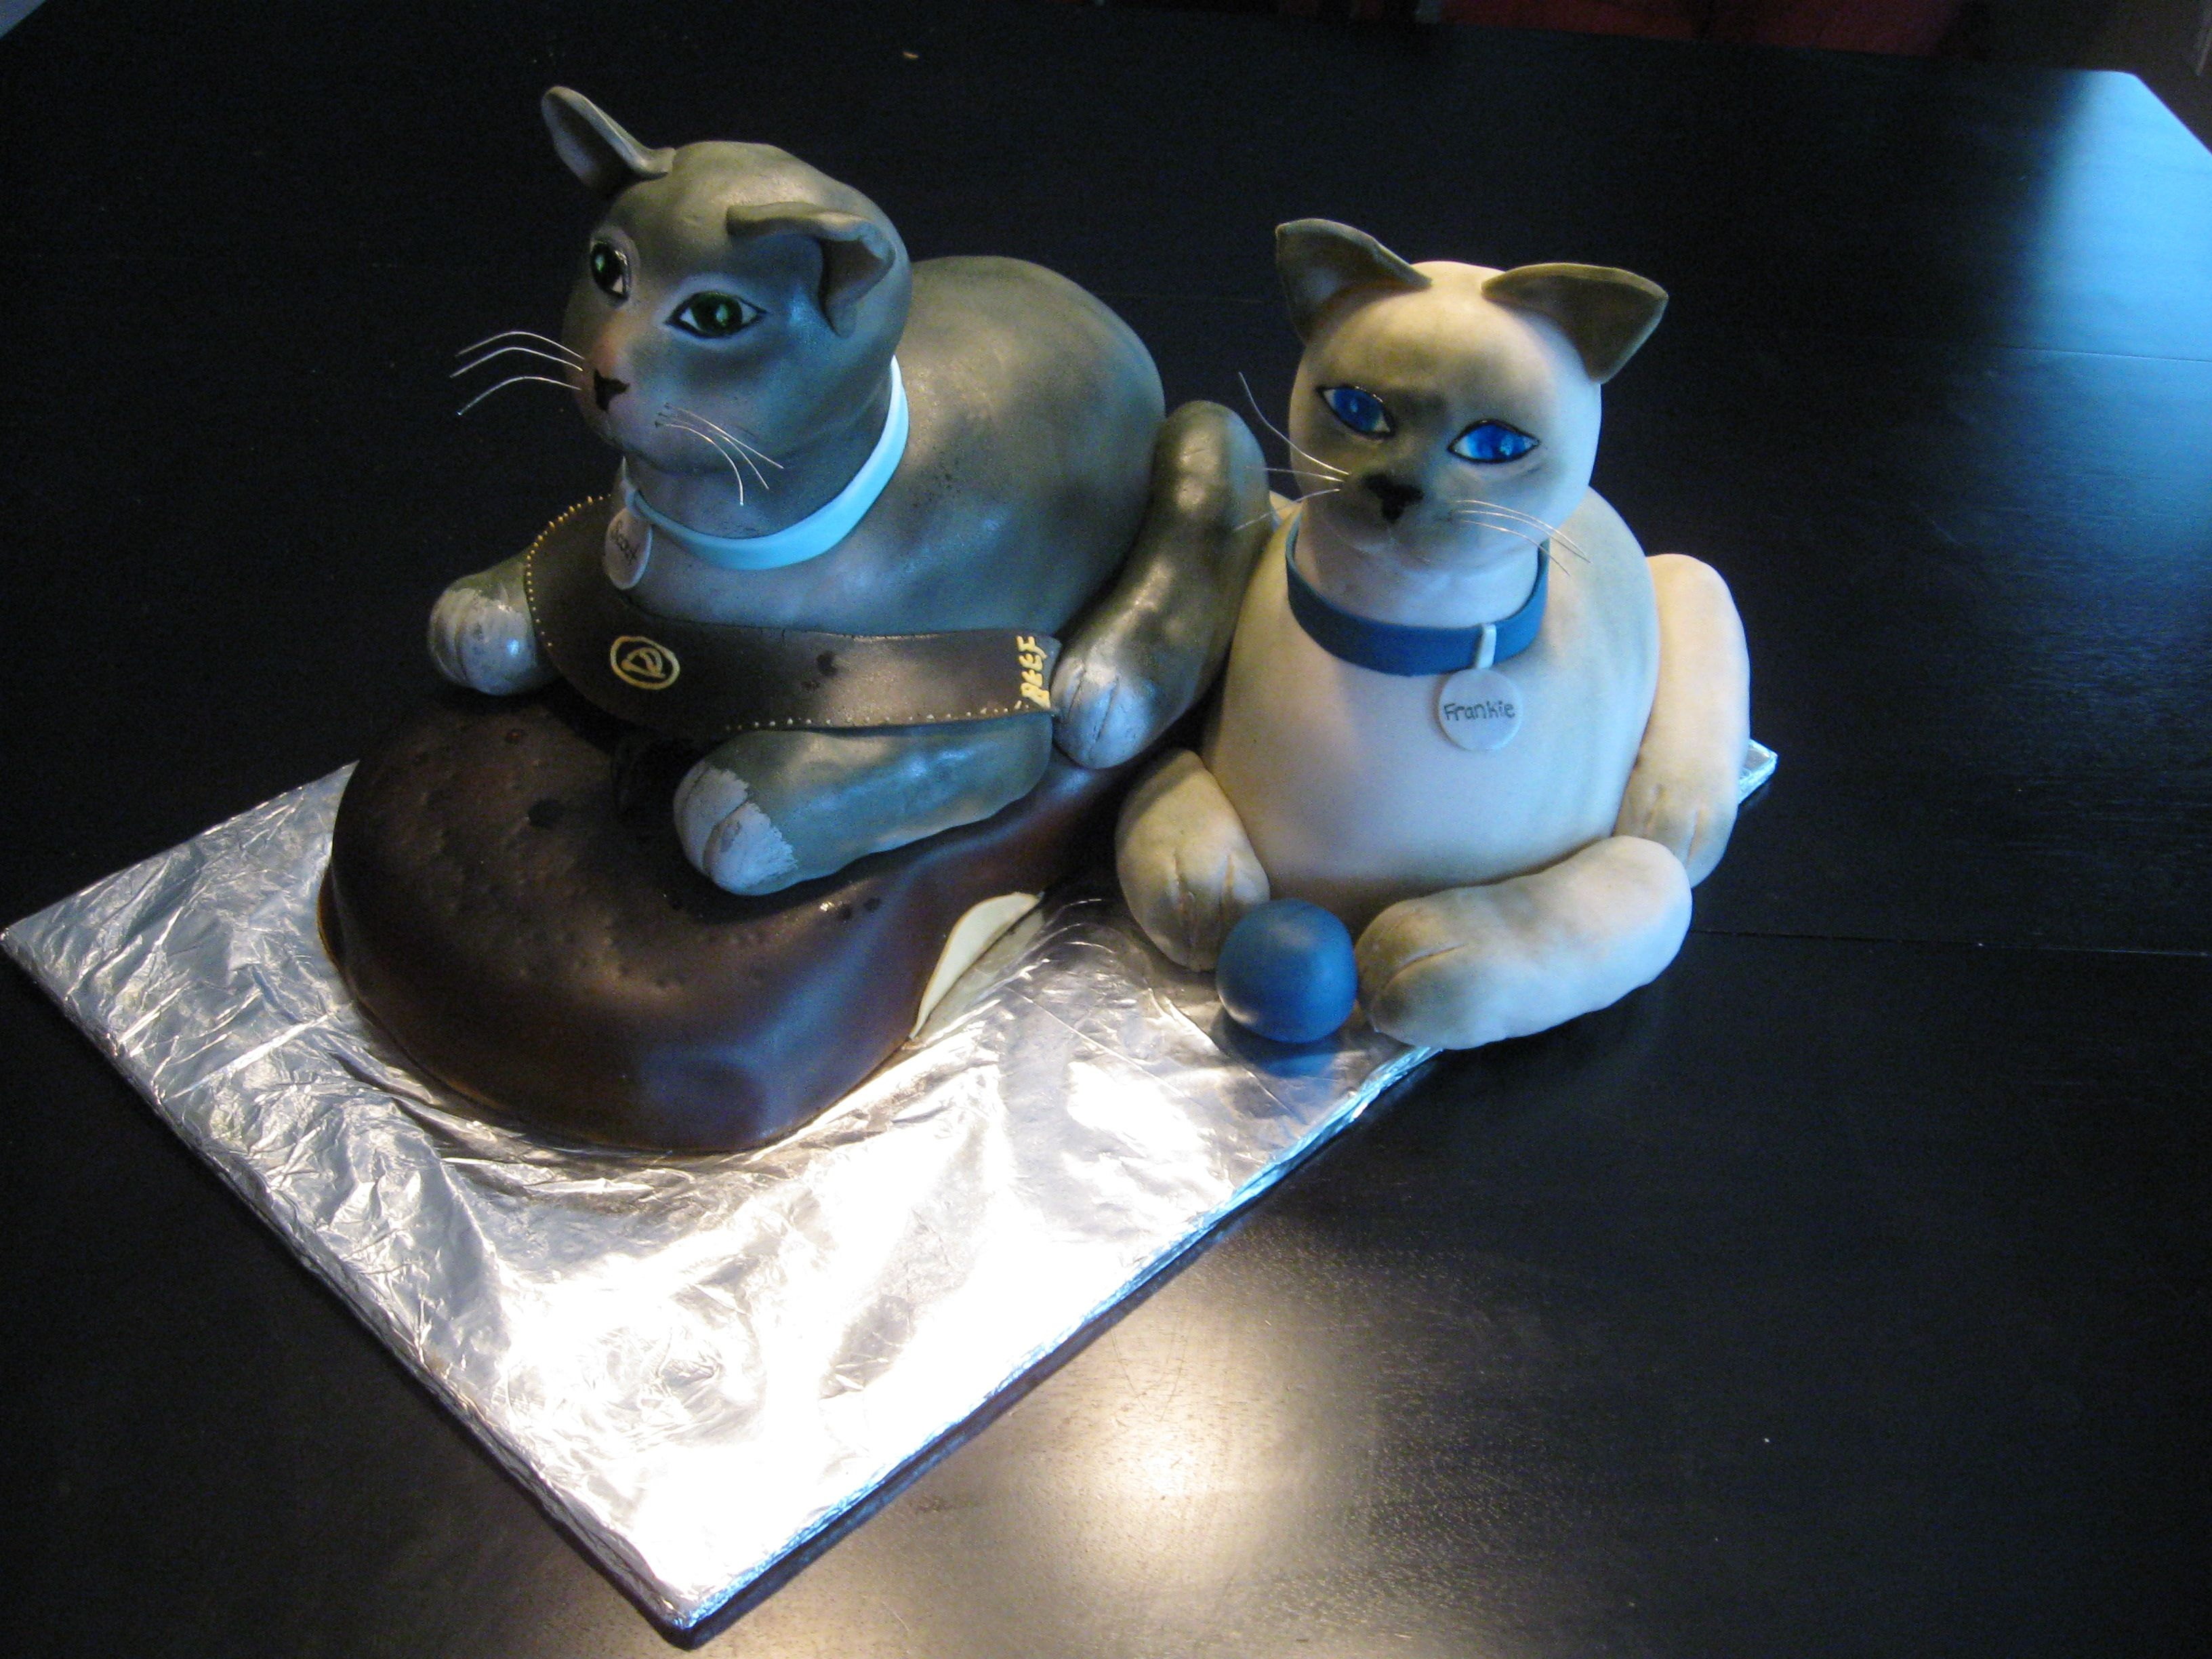 2 Cats And A Flip Flop This was for a groom's cake: their 2 cats, one sitting inside the groom's flip flop with the other alongside it playing with a...